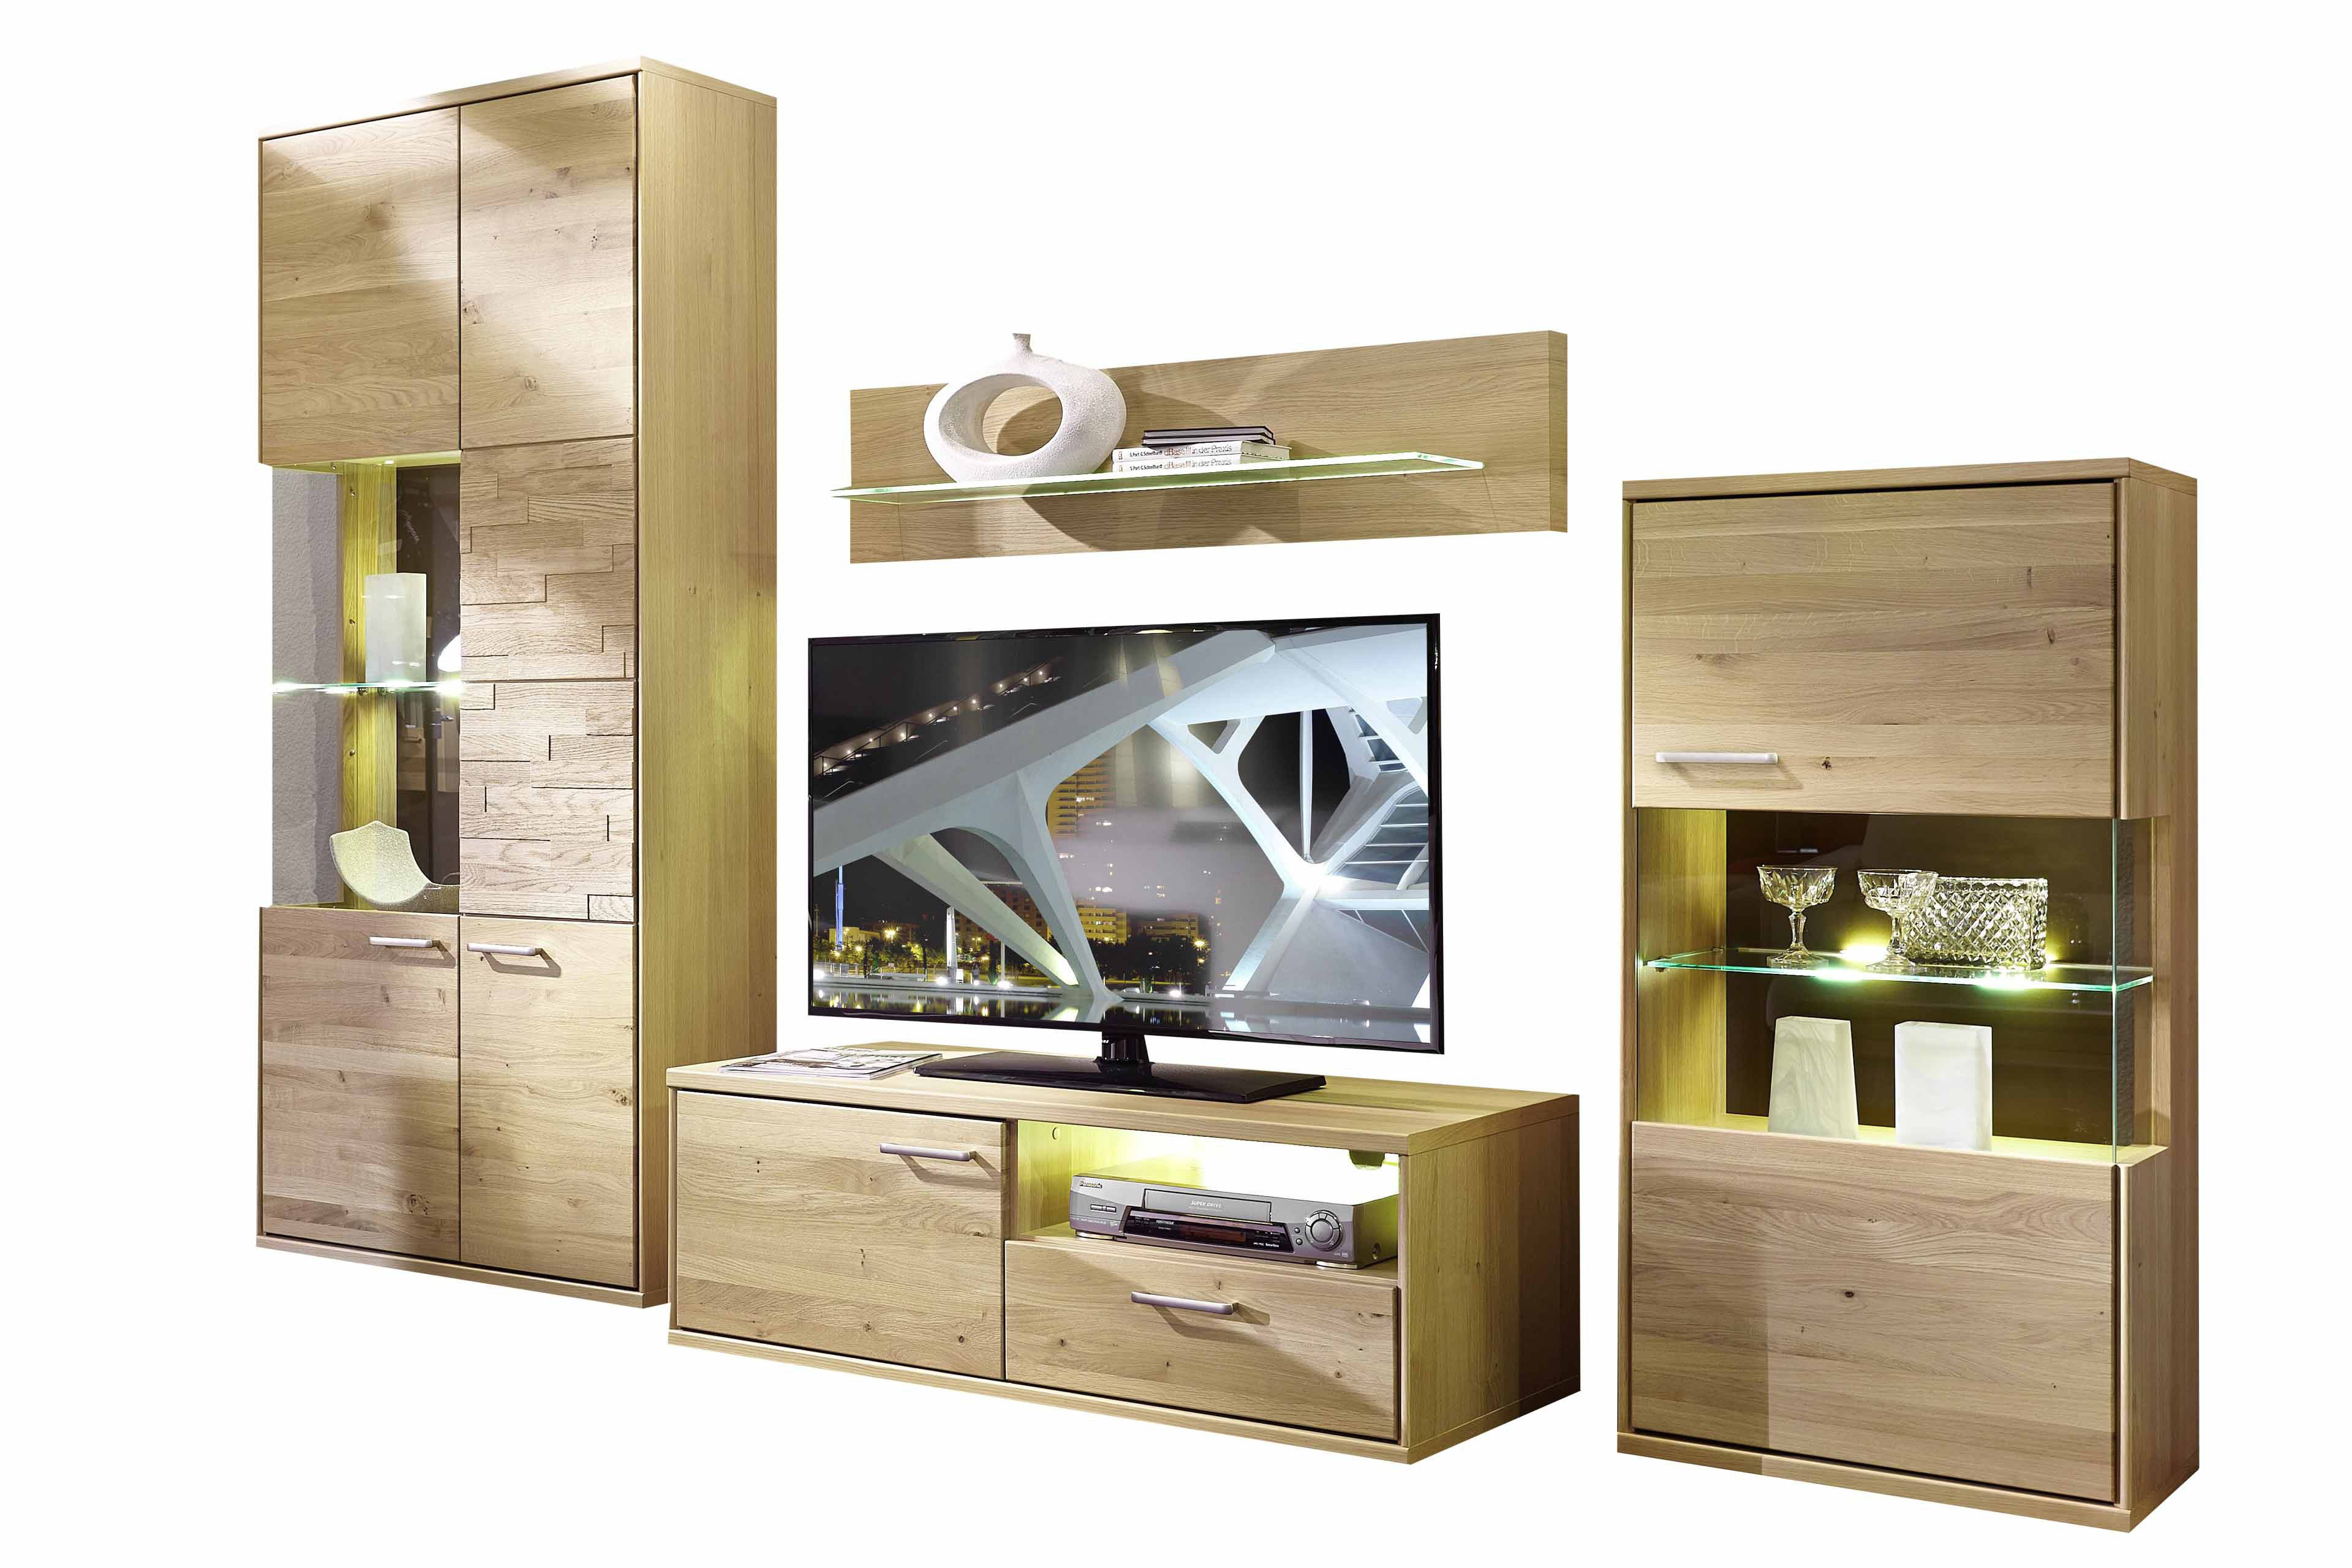 schr der m bel wohnwand natura v4 asteiche m bel letz ihr online shop. Black Bedroom Furniture Sets. Home Design Ideas